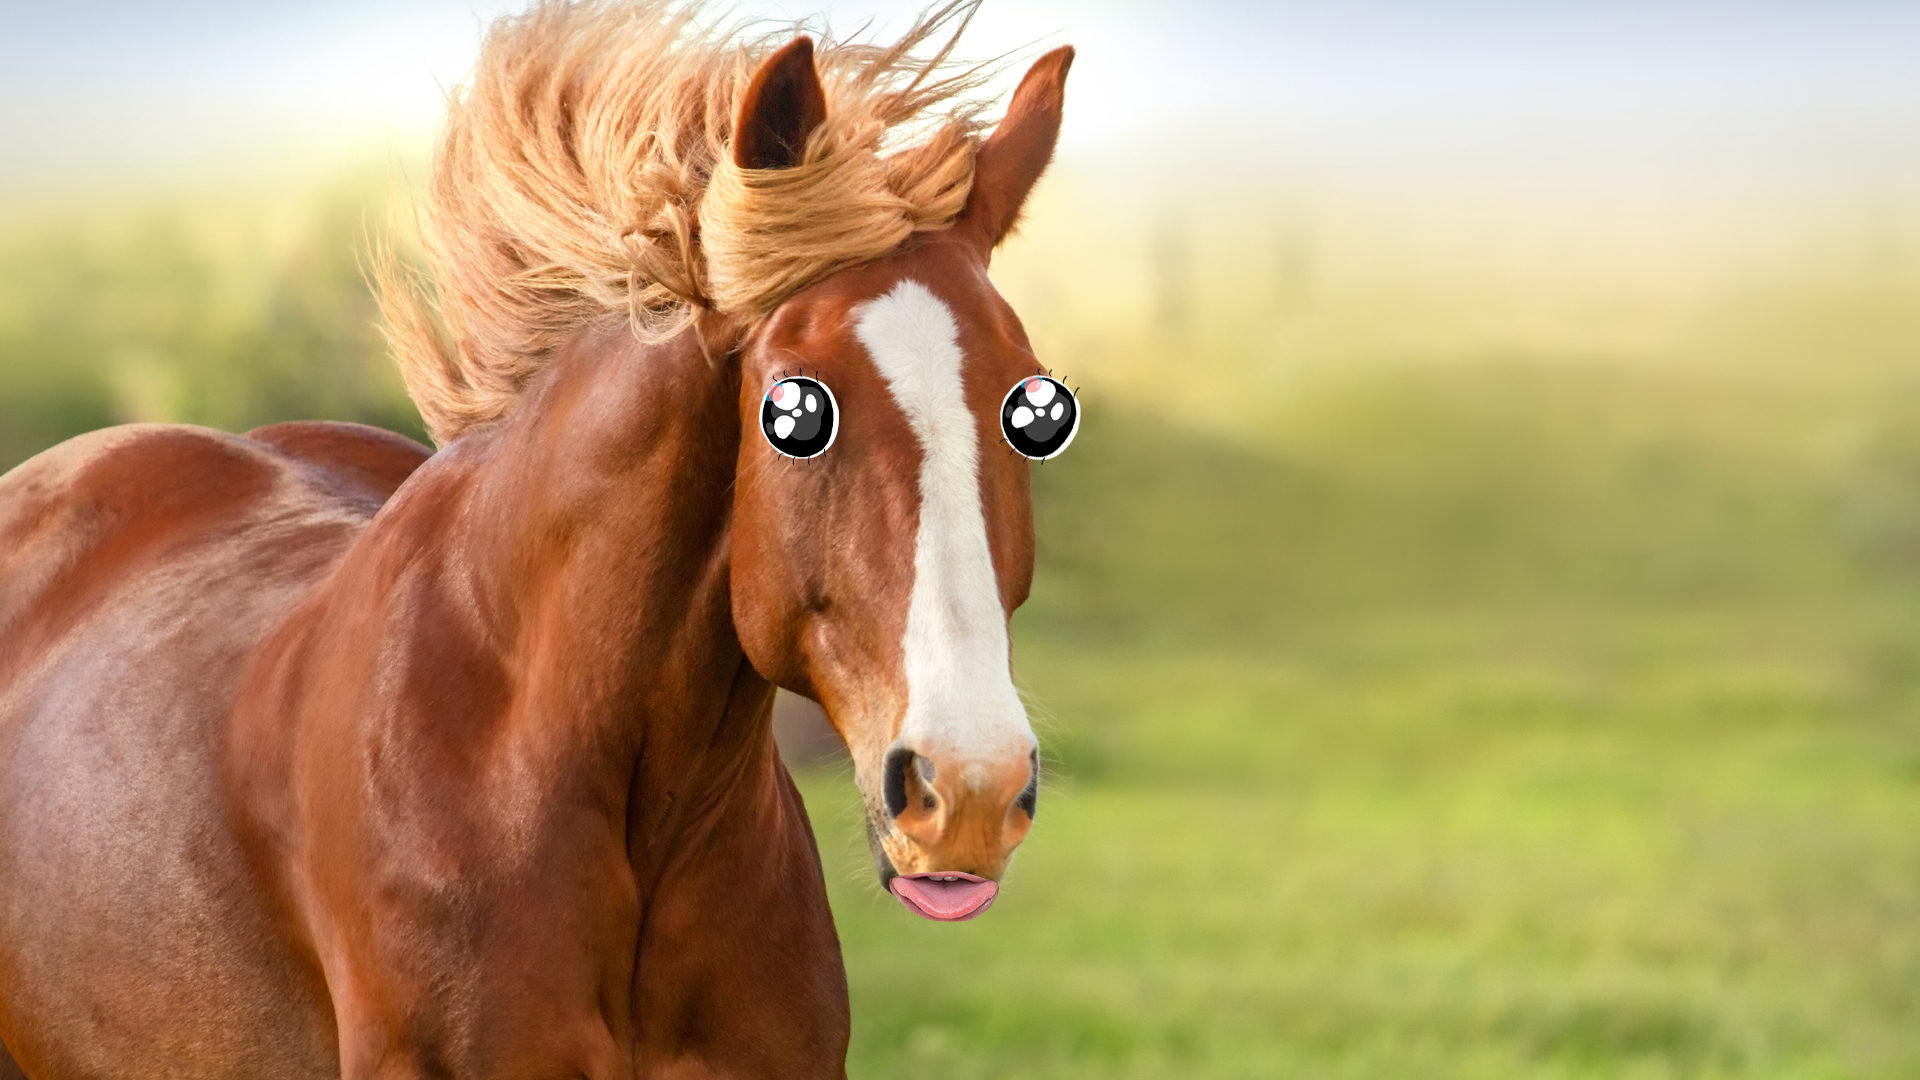 A horse with long flowing hair